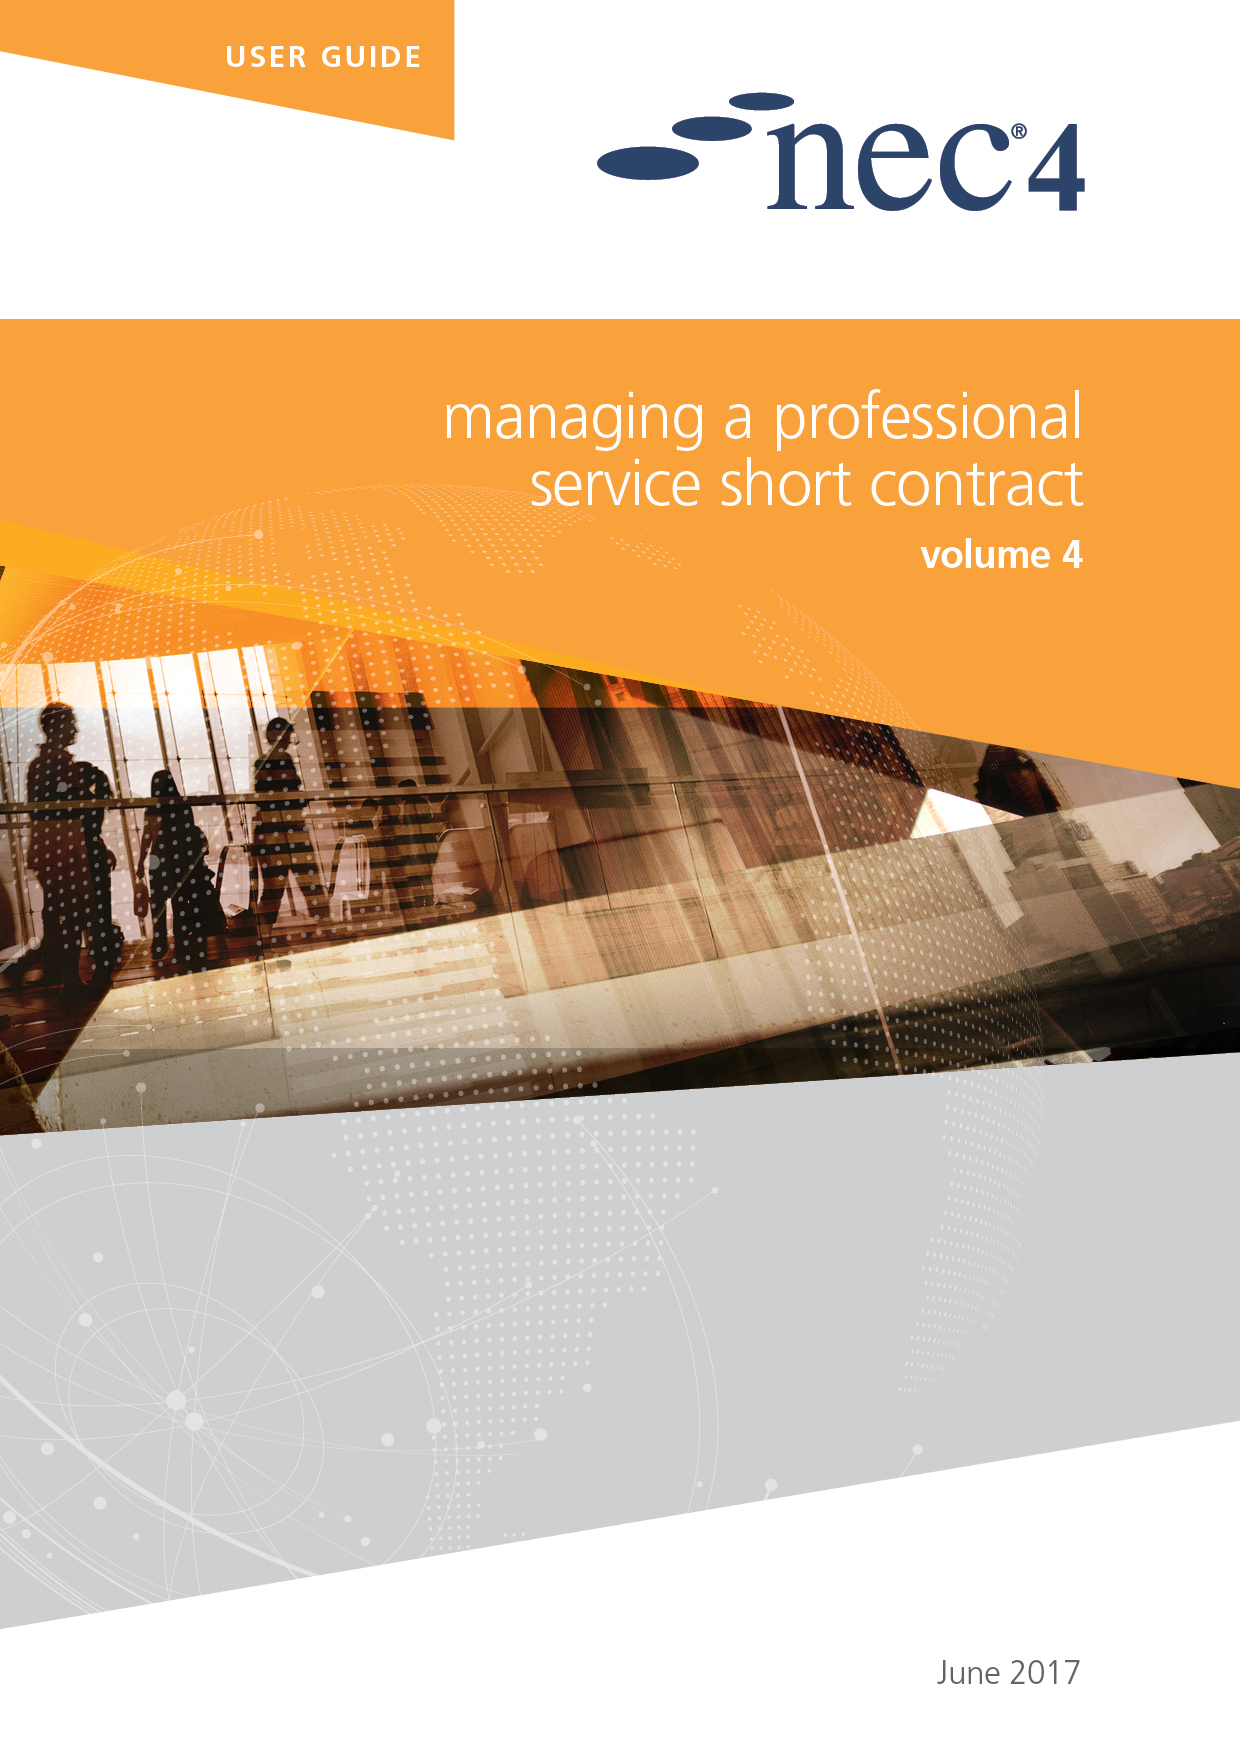 NEC4: Managing a Professional Service Short Contract